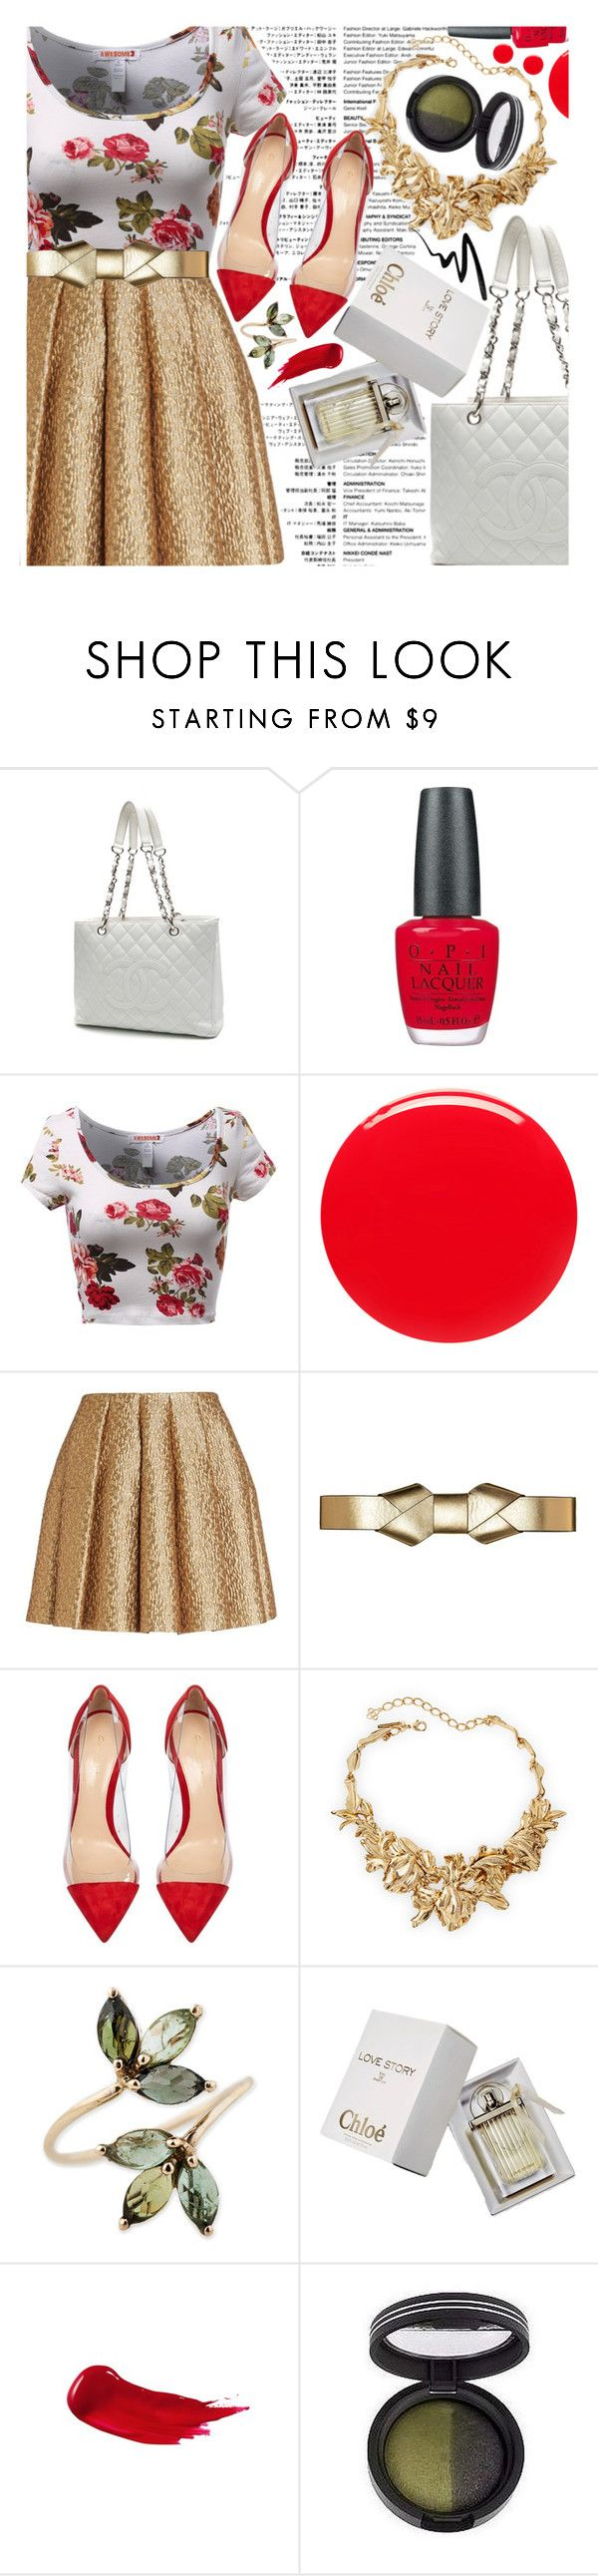 """I'm sorry if I seem uninterested"" by virtual-closet-collector ❤ liked on Polyvore featuring Chanel, OPI, Eve Snow, Creatures Of The Wind, Marni, Gianvito Rossi, Oscar de la Renta, Chloé, Laura Geller and Eyeko"